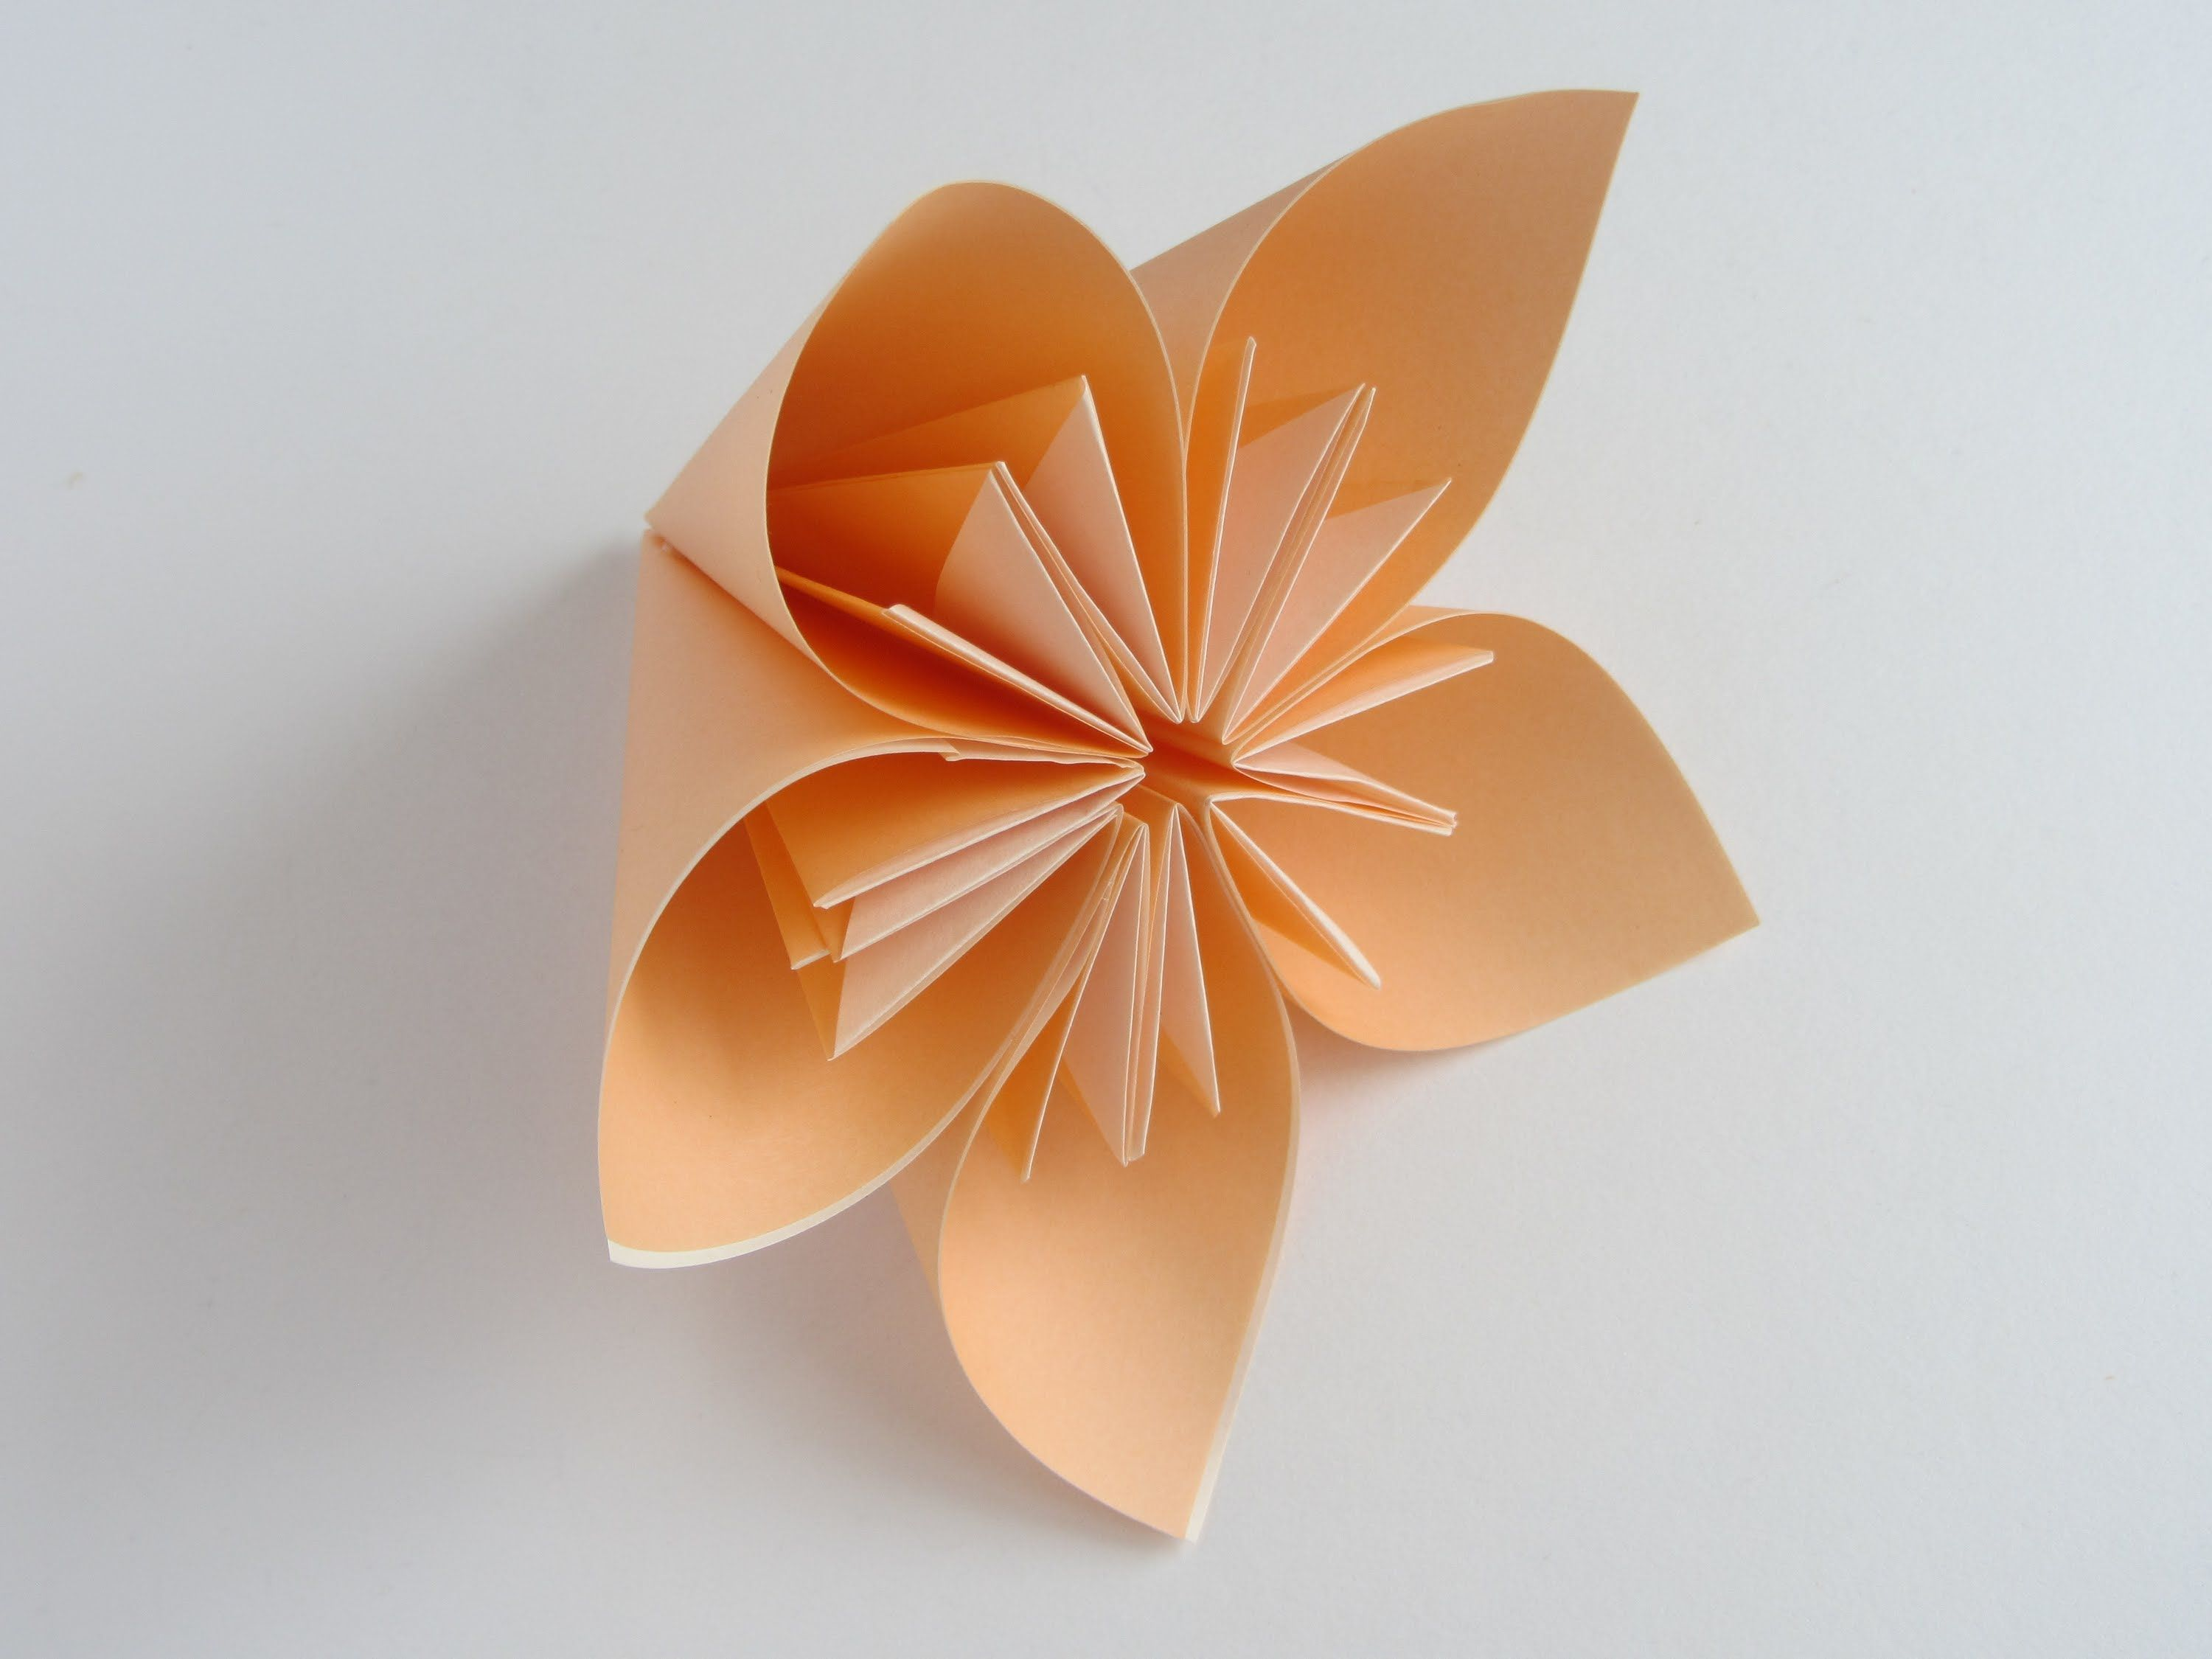 The art of paper folding how to make an origami flower kusudam in this post you will find video instructions that will teach you how to make several easy origami flowers suitable even for beginners mightylinksfo